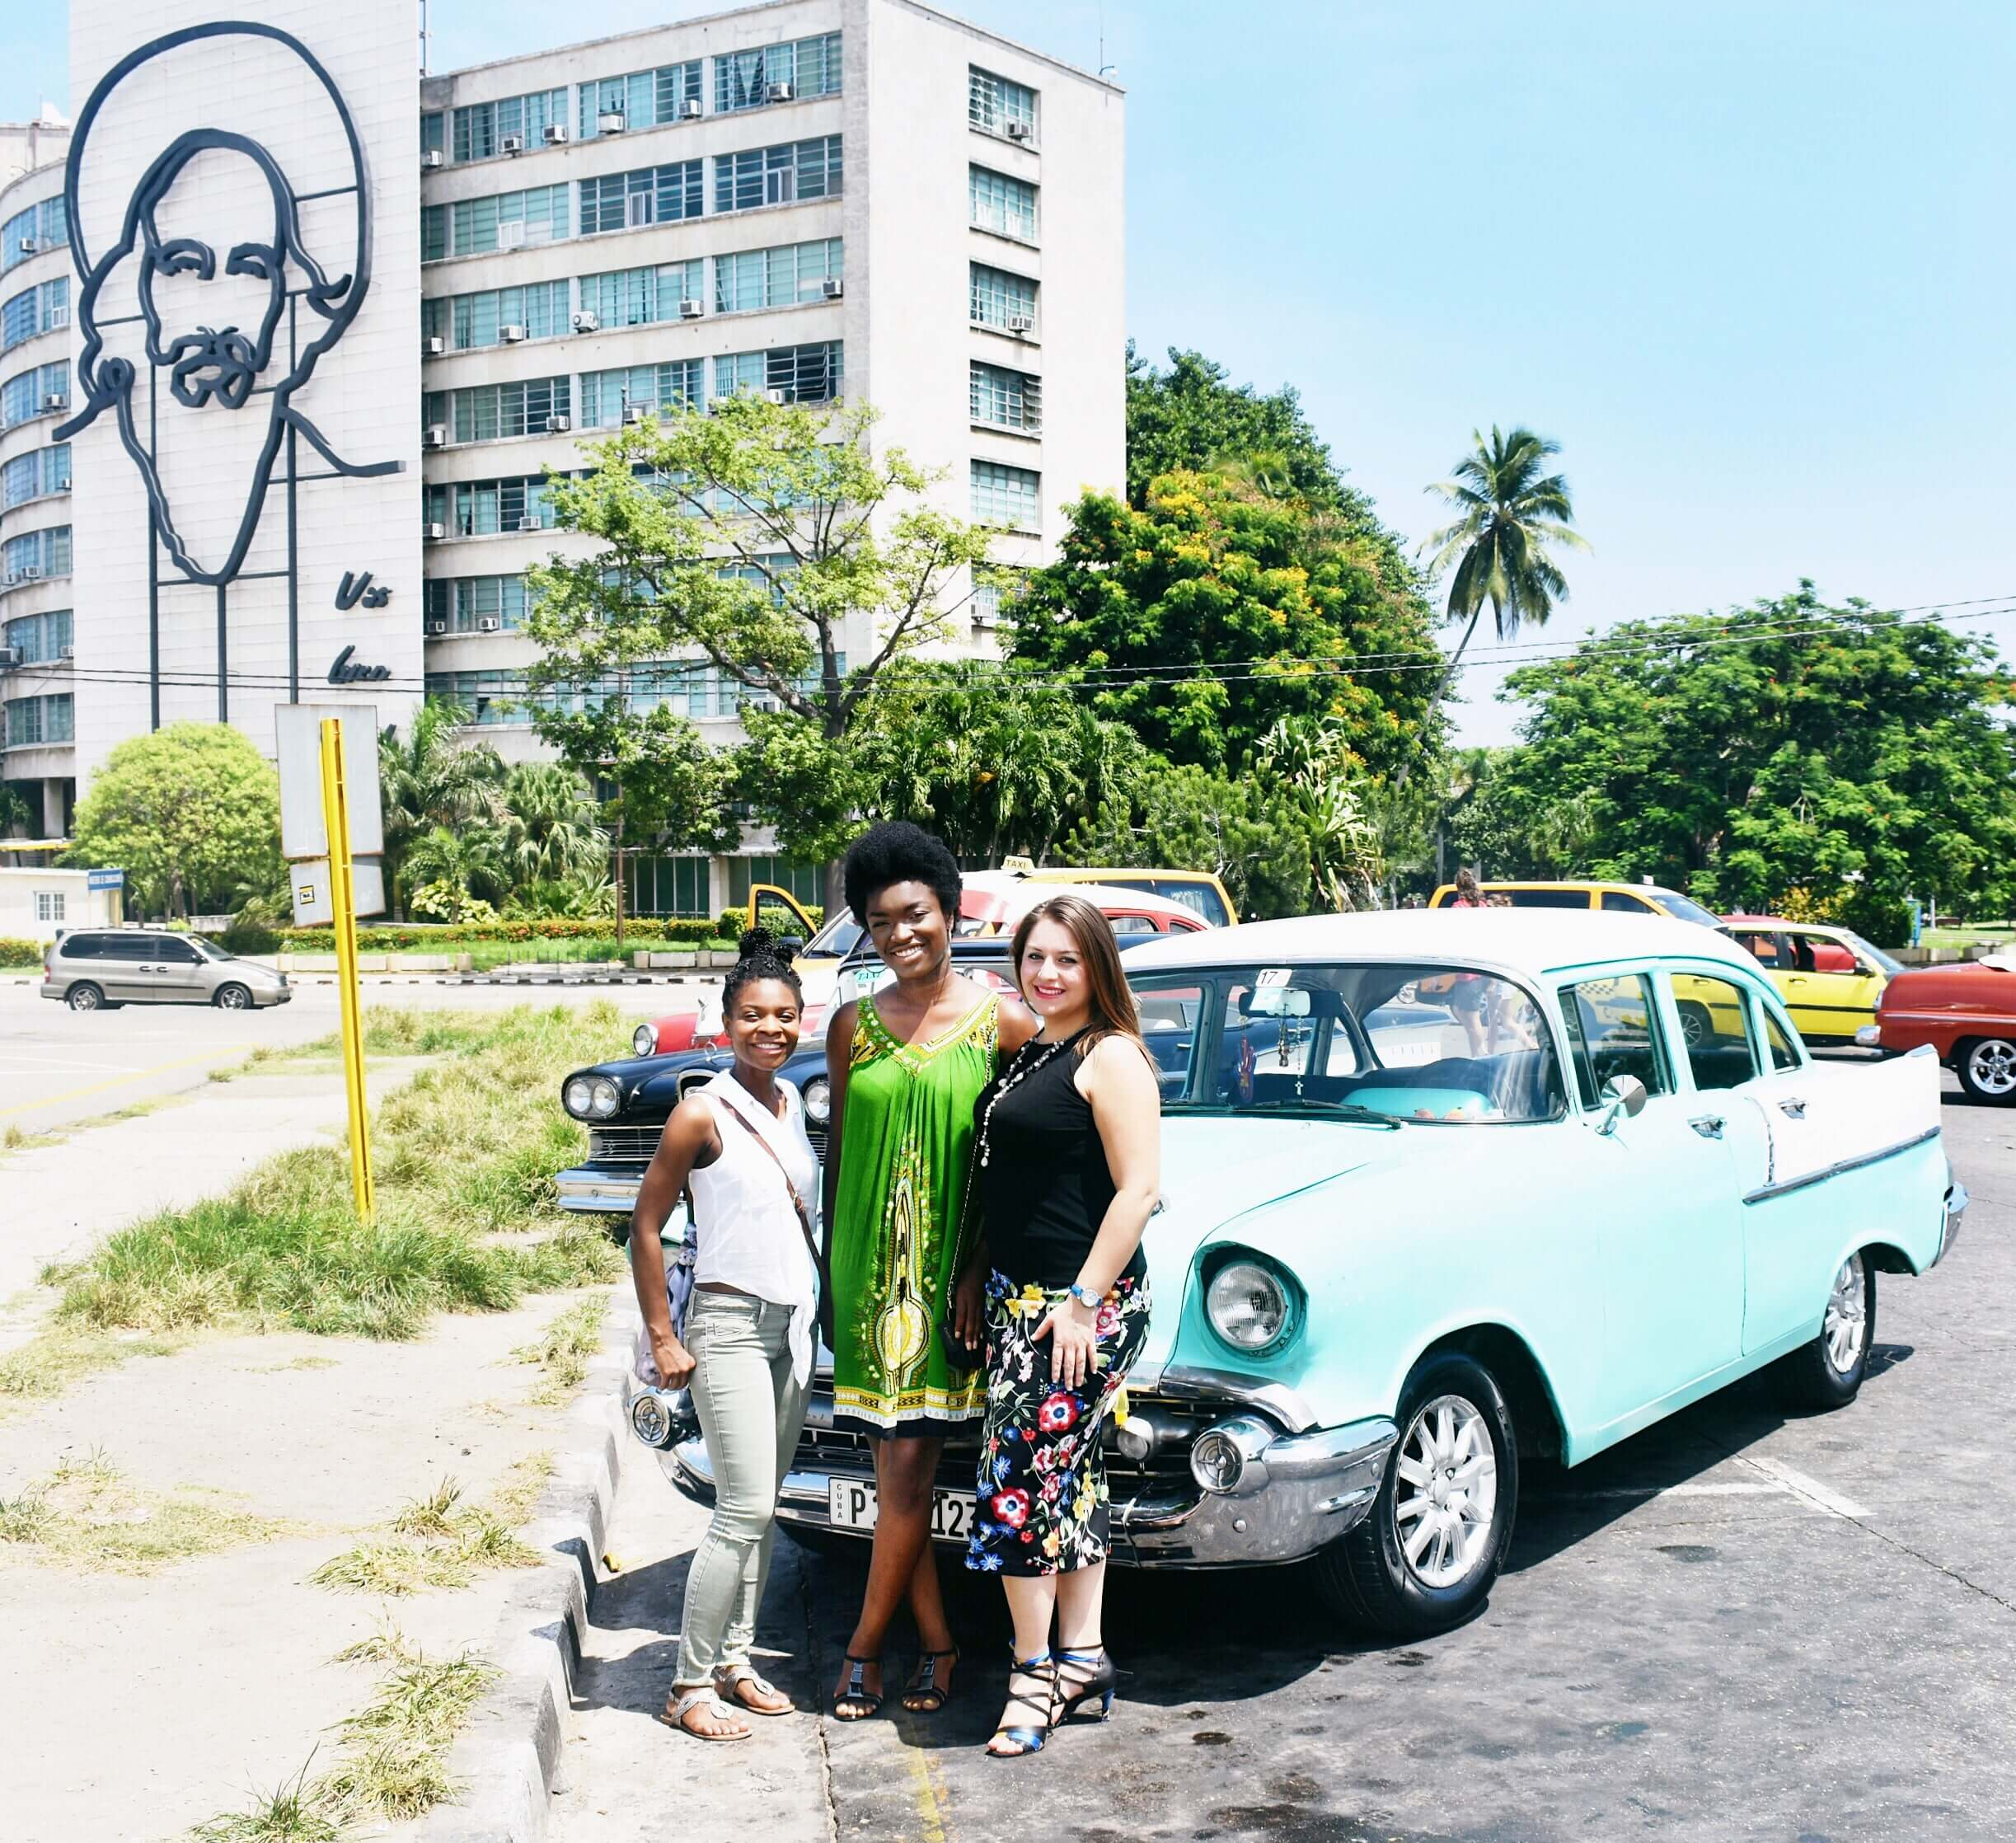 The girls and I posing in front of our ride at Plaza de la Revolucion